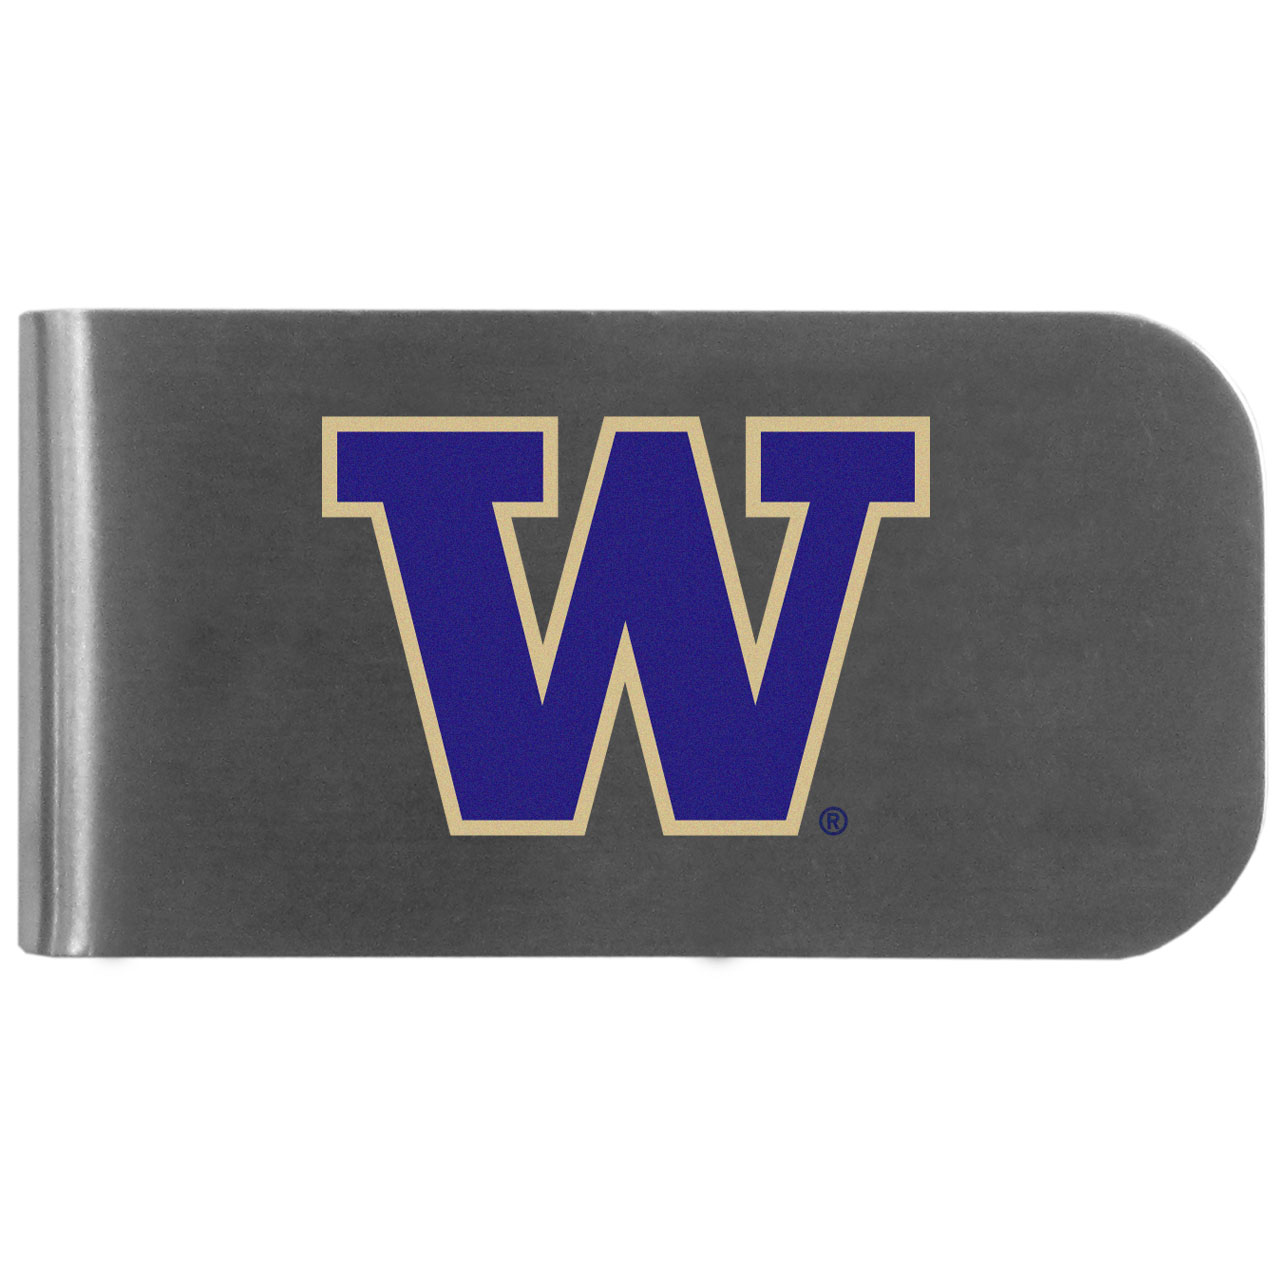 Washington Huskies Logo Bottle Opener Money Clip - This unique money clip features a classic, brushed-metal finish with a handy bottle opener feature on the back. The clip has the Washington Huskies logo expertly printed on the front of the clip.